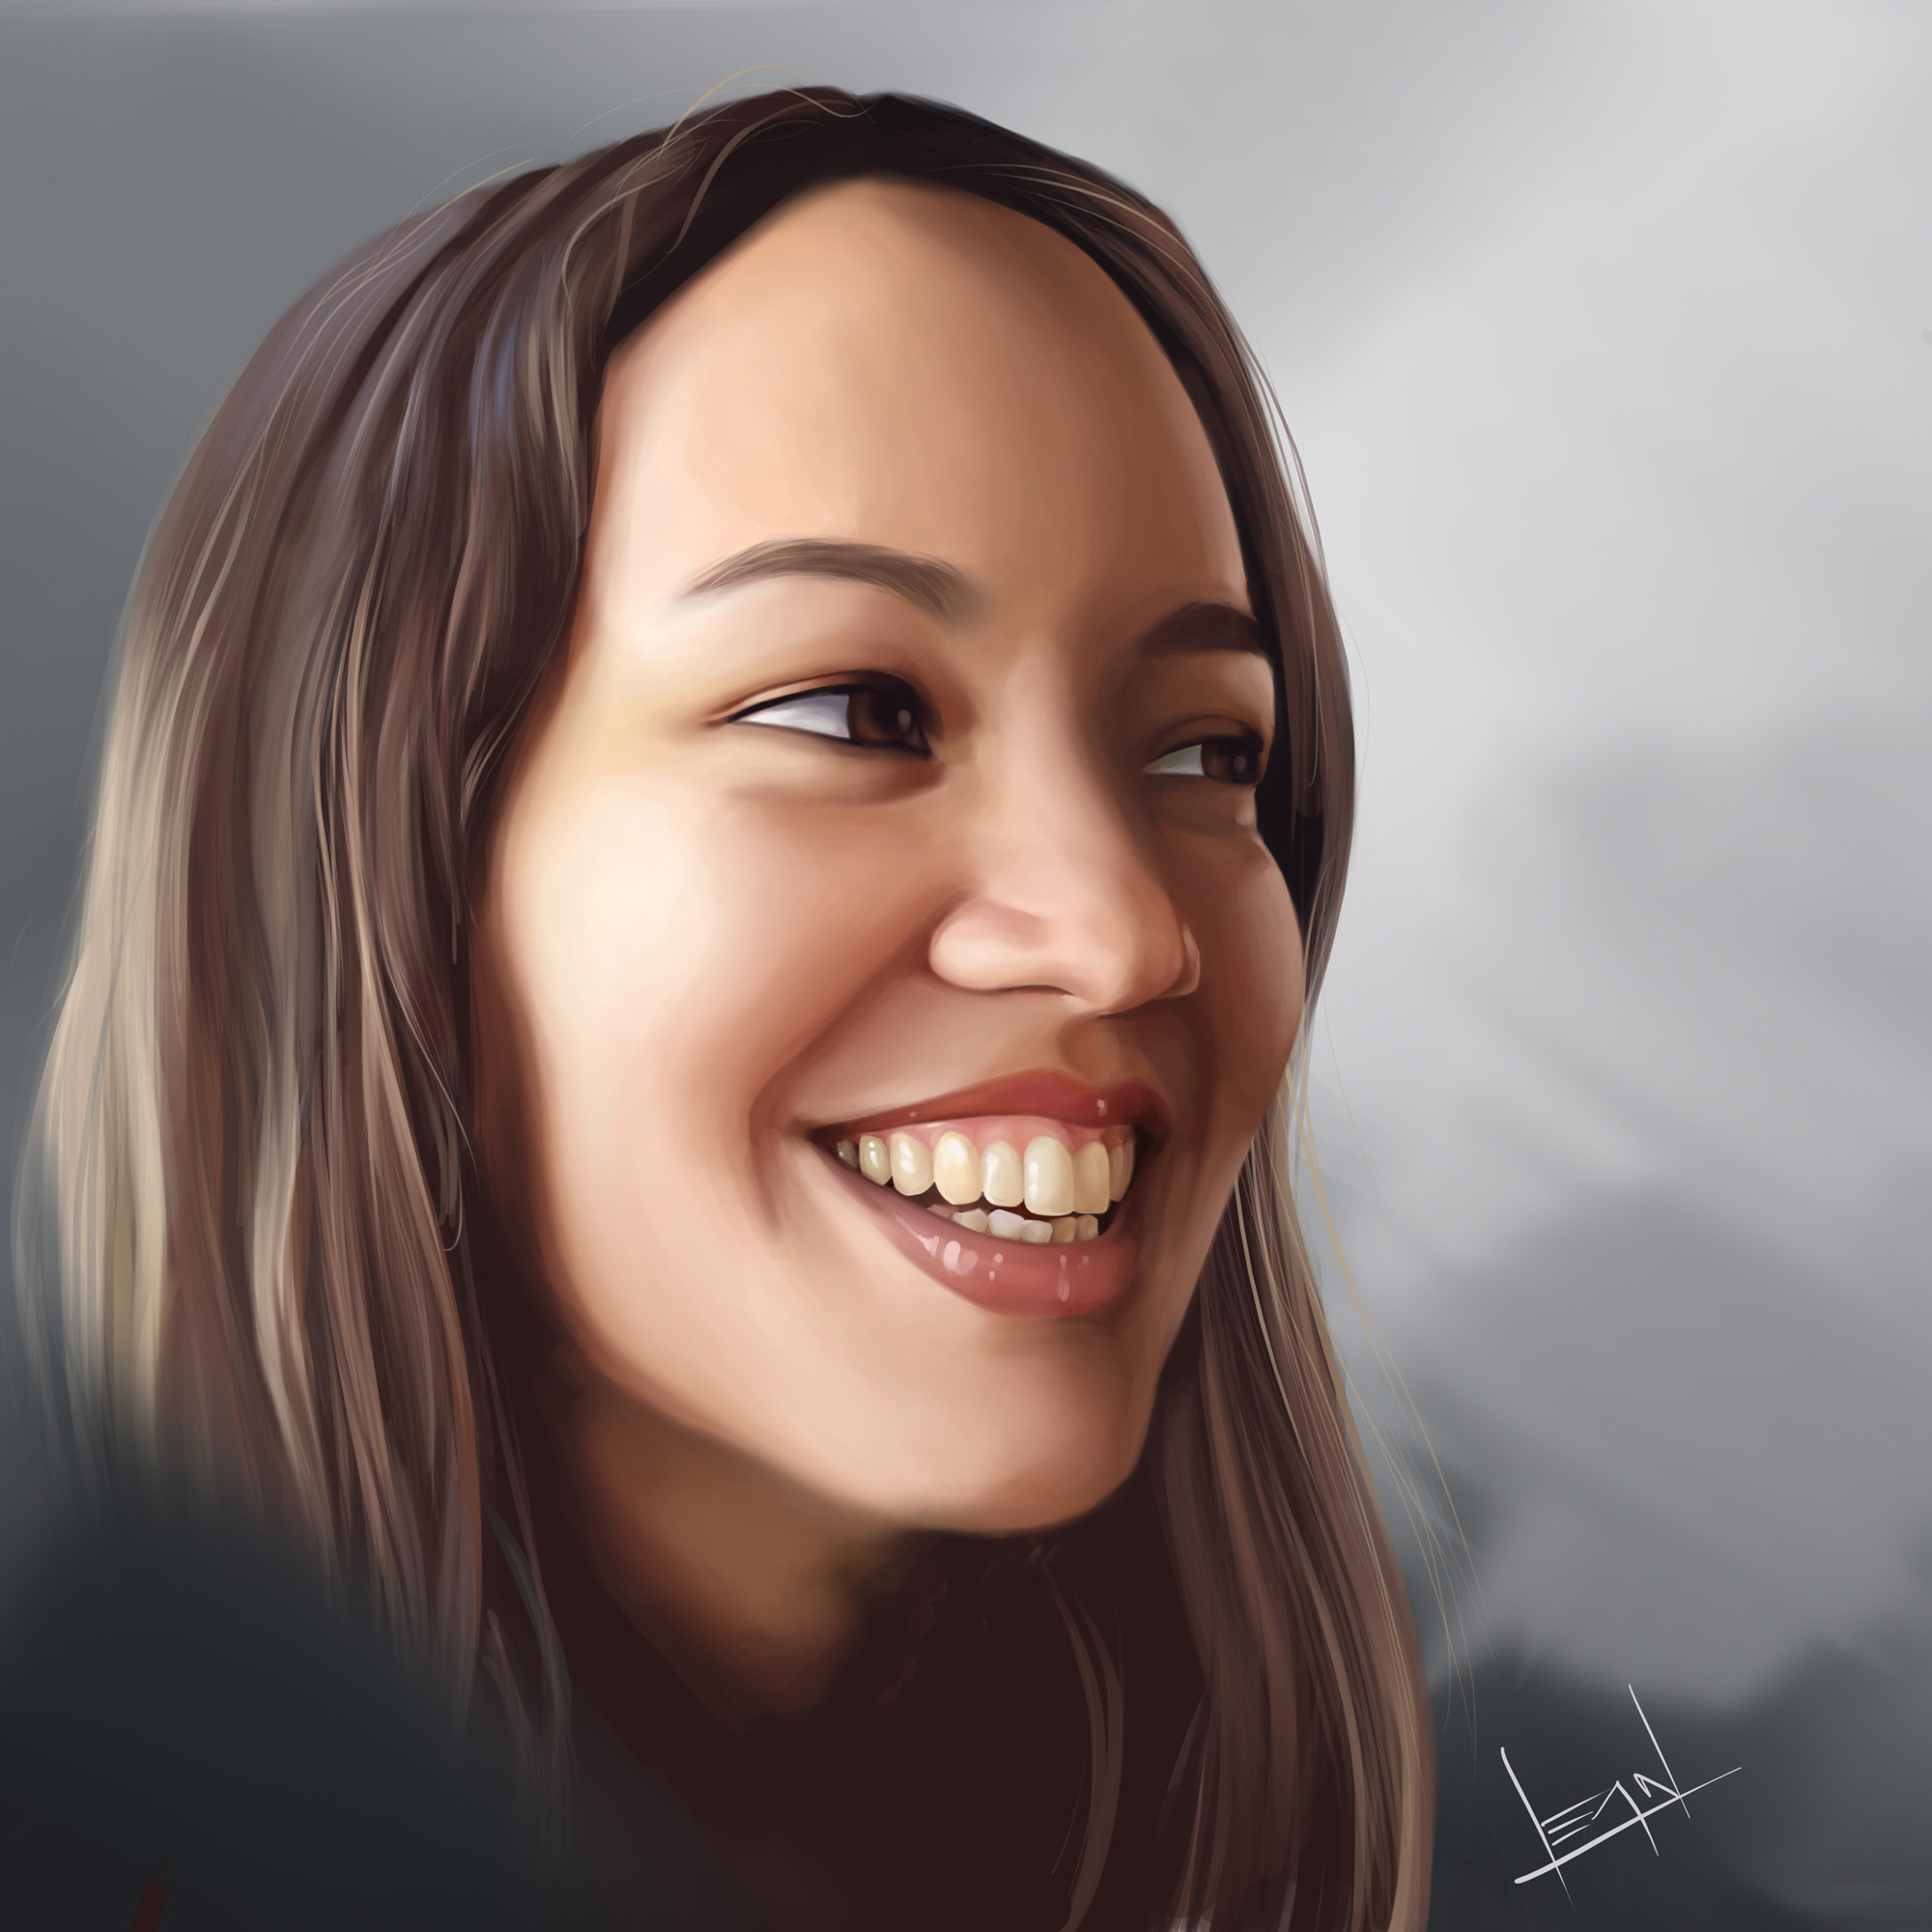 Ana Digital Painting By